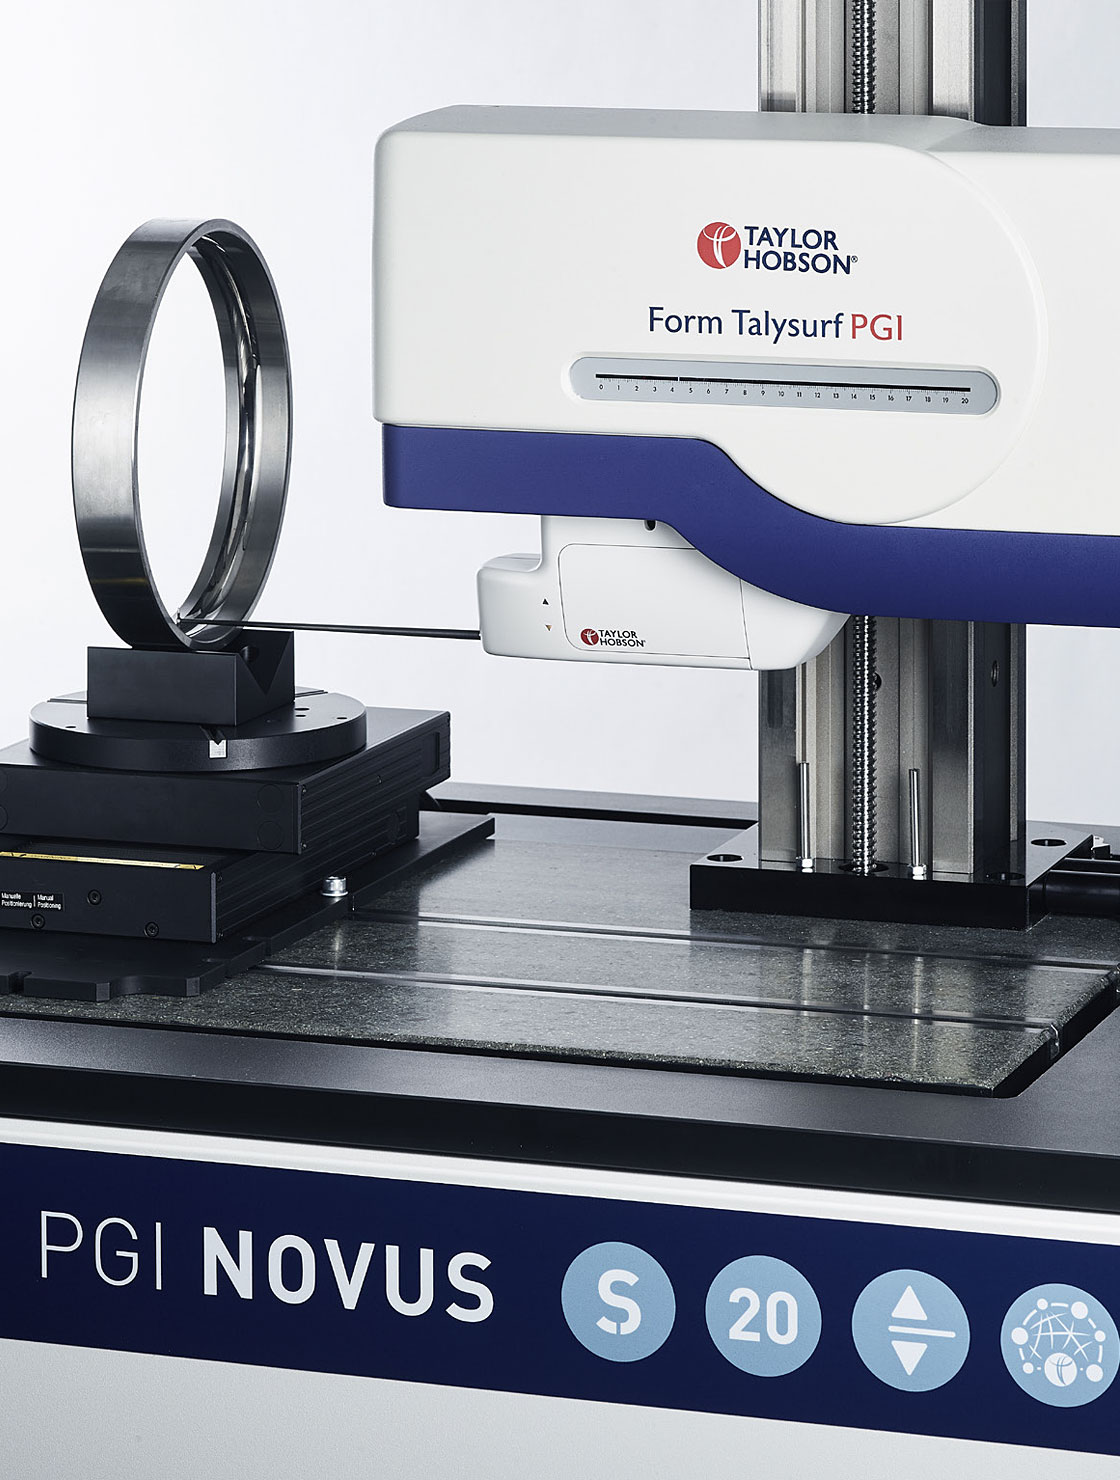 Advanced surface finish & contour measurement system